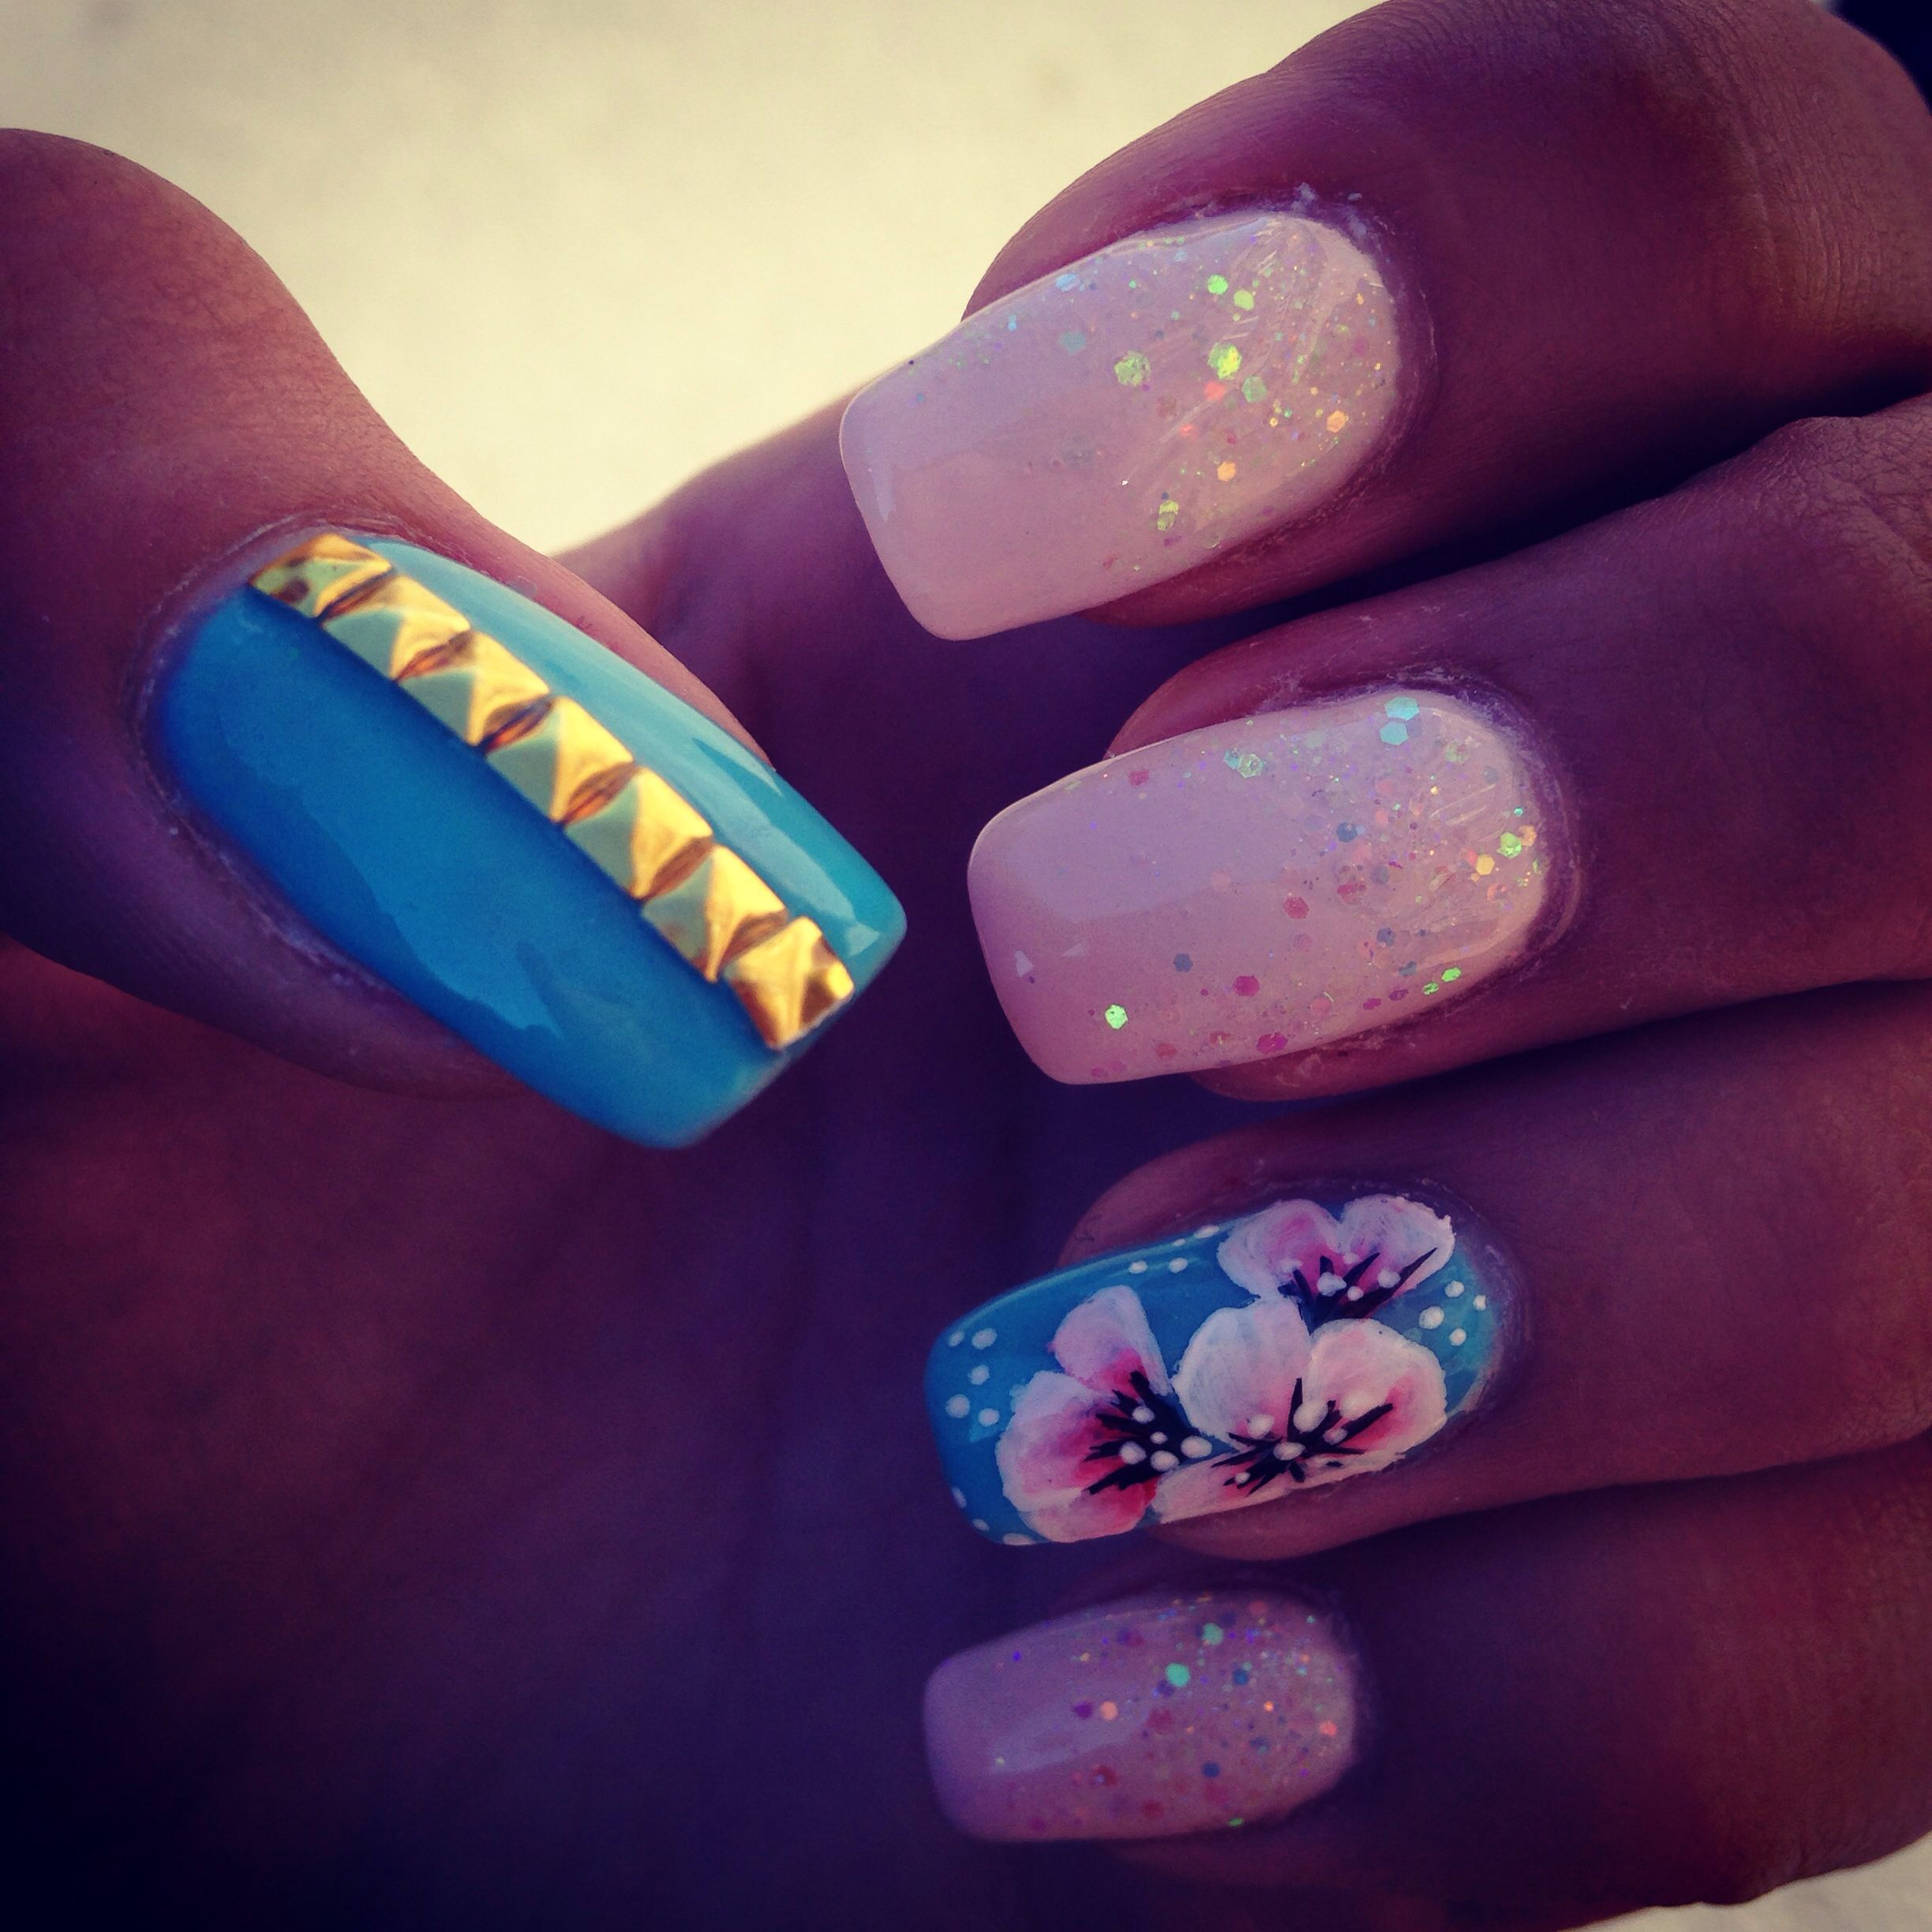 My nails #nailmaster.lv #flowers #gliters